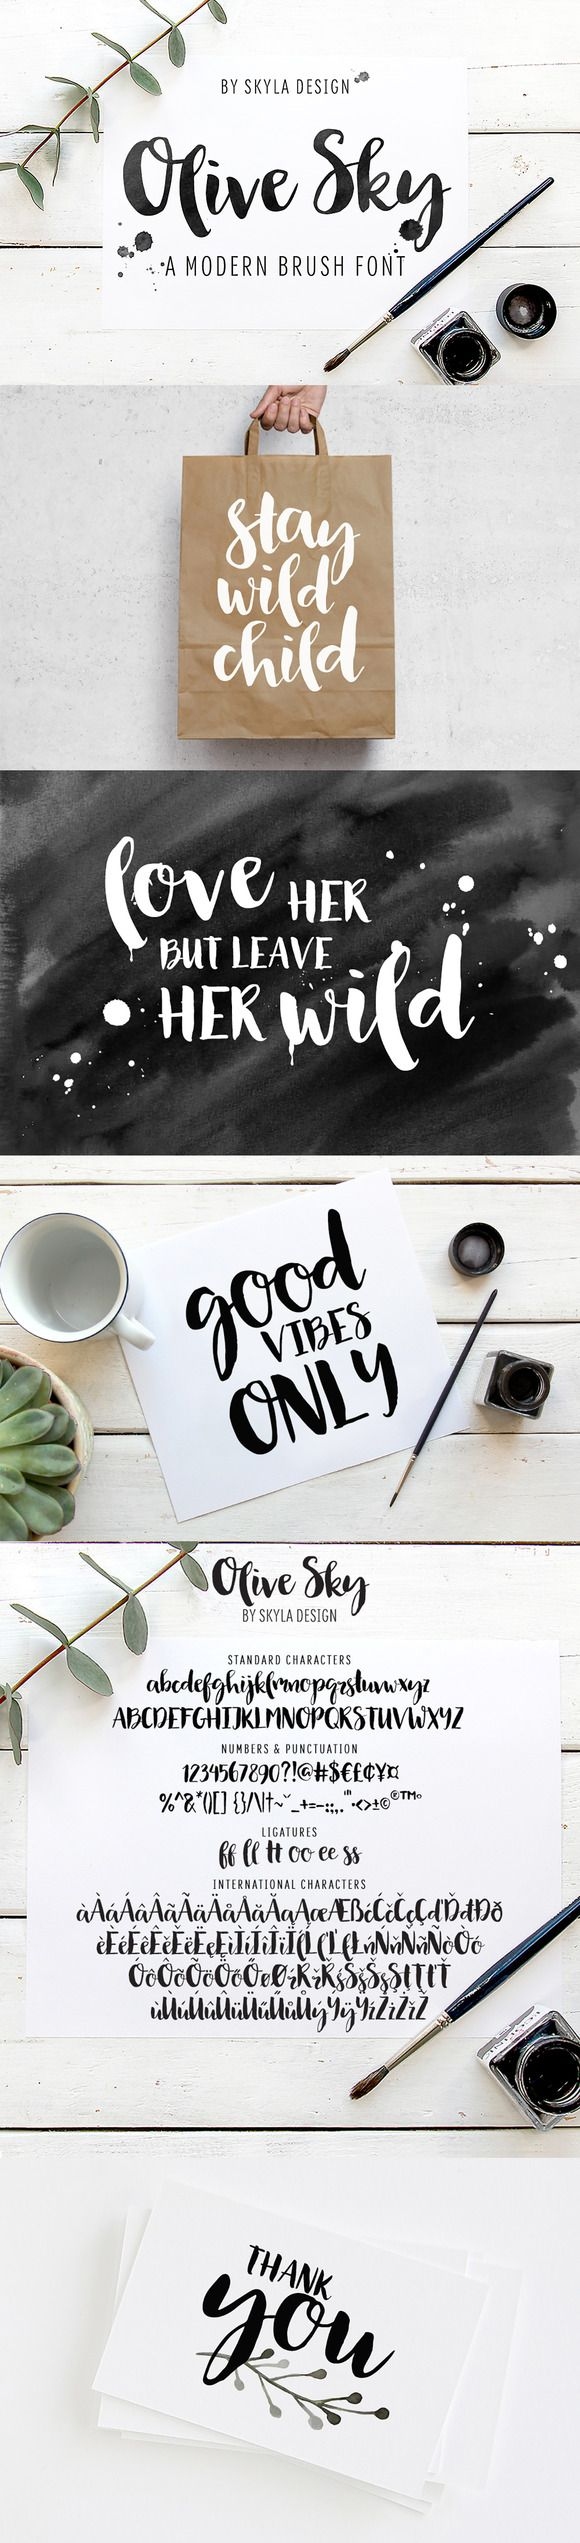 Modern brush font - Olive Sky by Skyla Design #fonts #font #bundle #script #brush #bold #handwritten #download #type #graphic #design #print #watercolor #cursive #calligraphy #vintage #typography #modern #digital #handwriting #hand #lettered #drawn #pairing